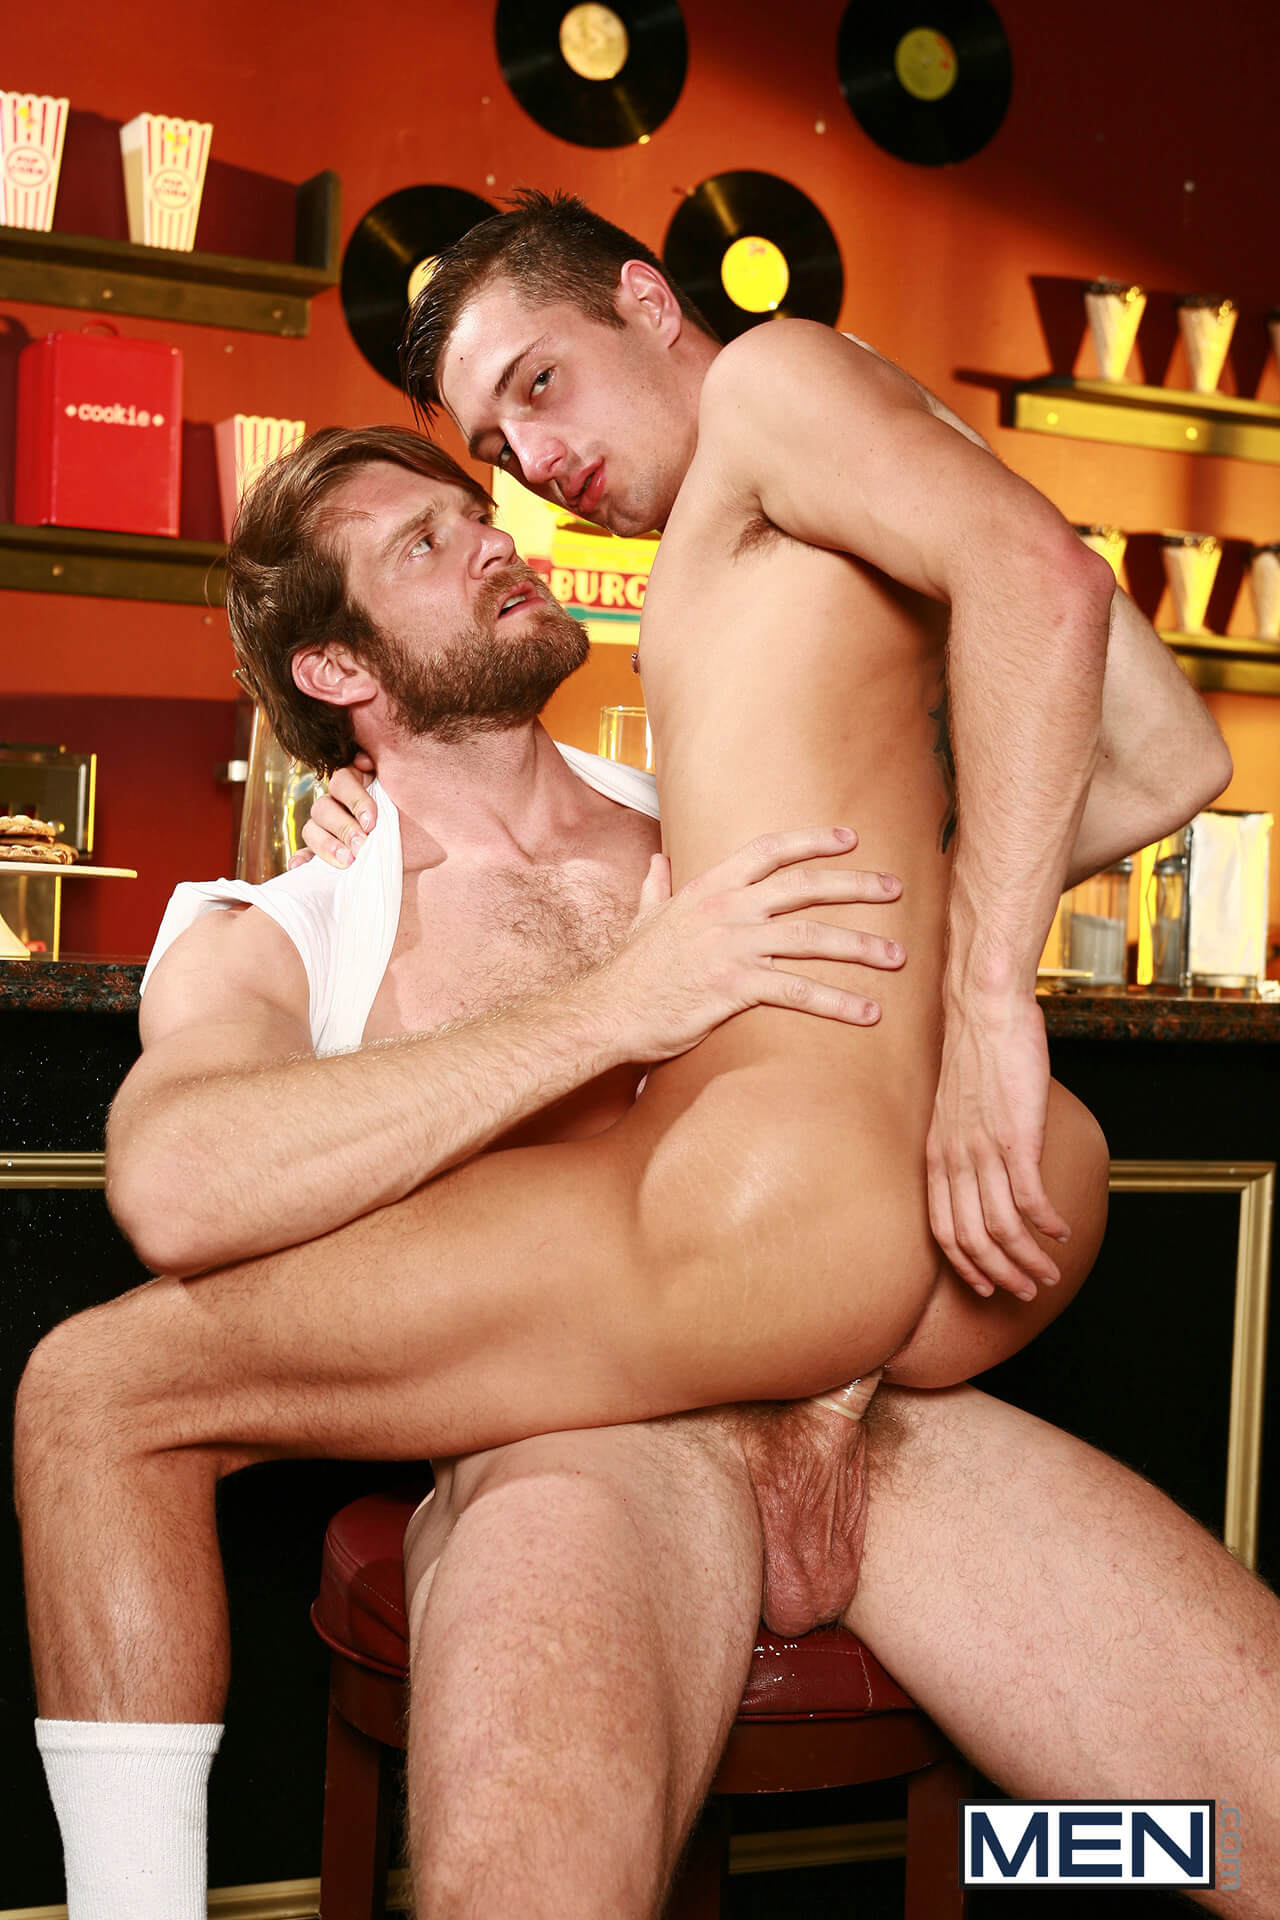 Sex traveler colby keller jd phoenix ass love